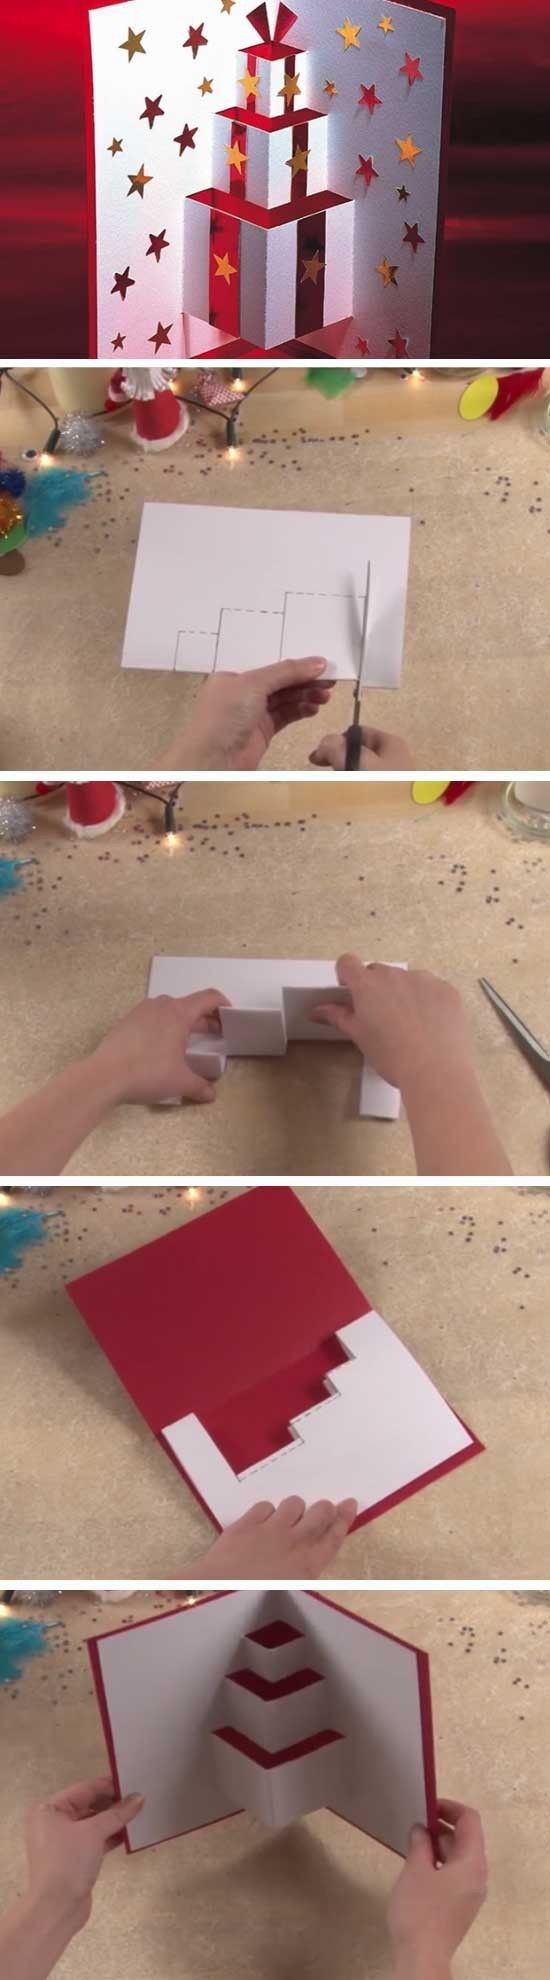 Diy Christmas card!